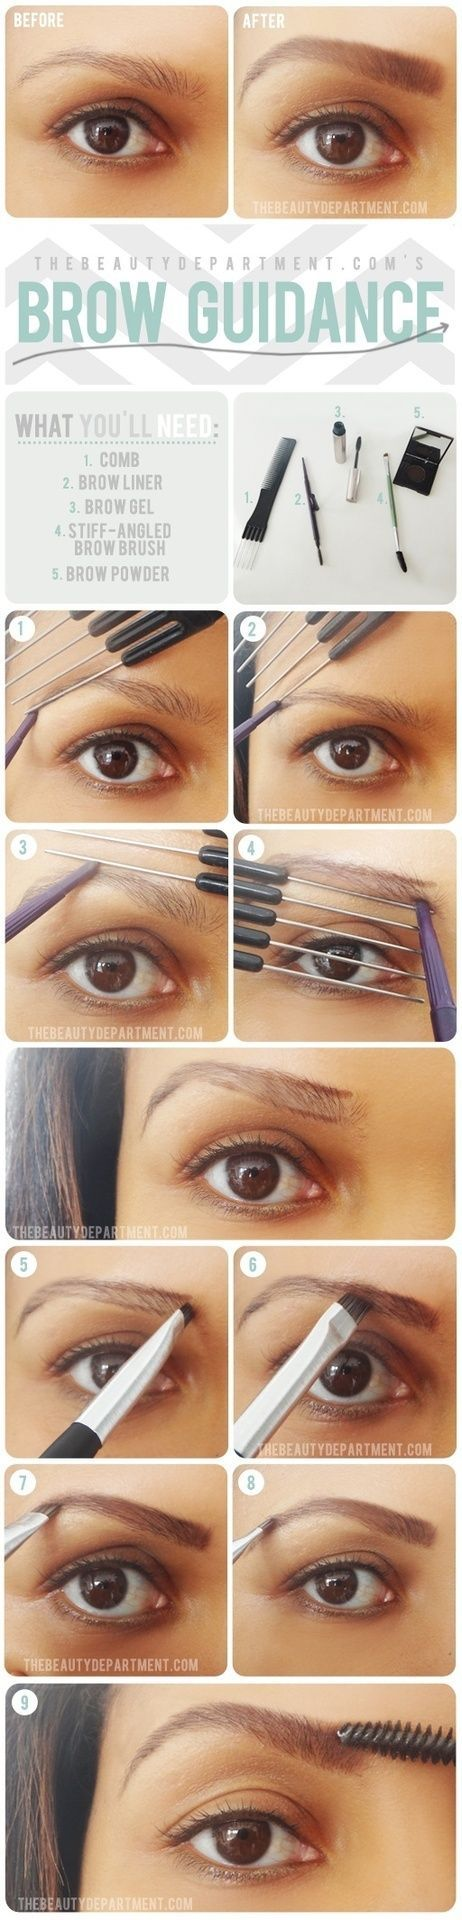 More about brows.